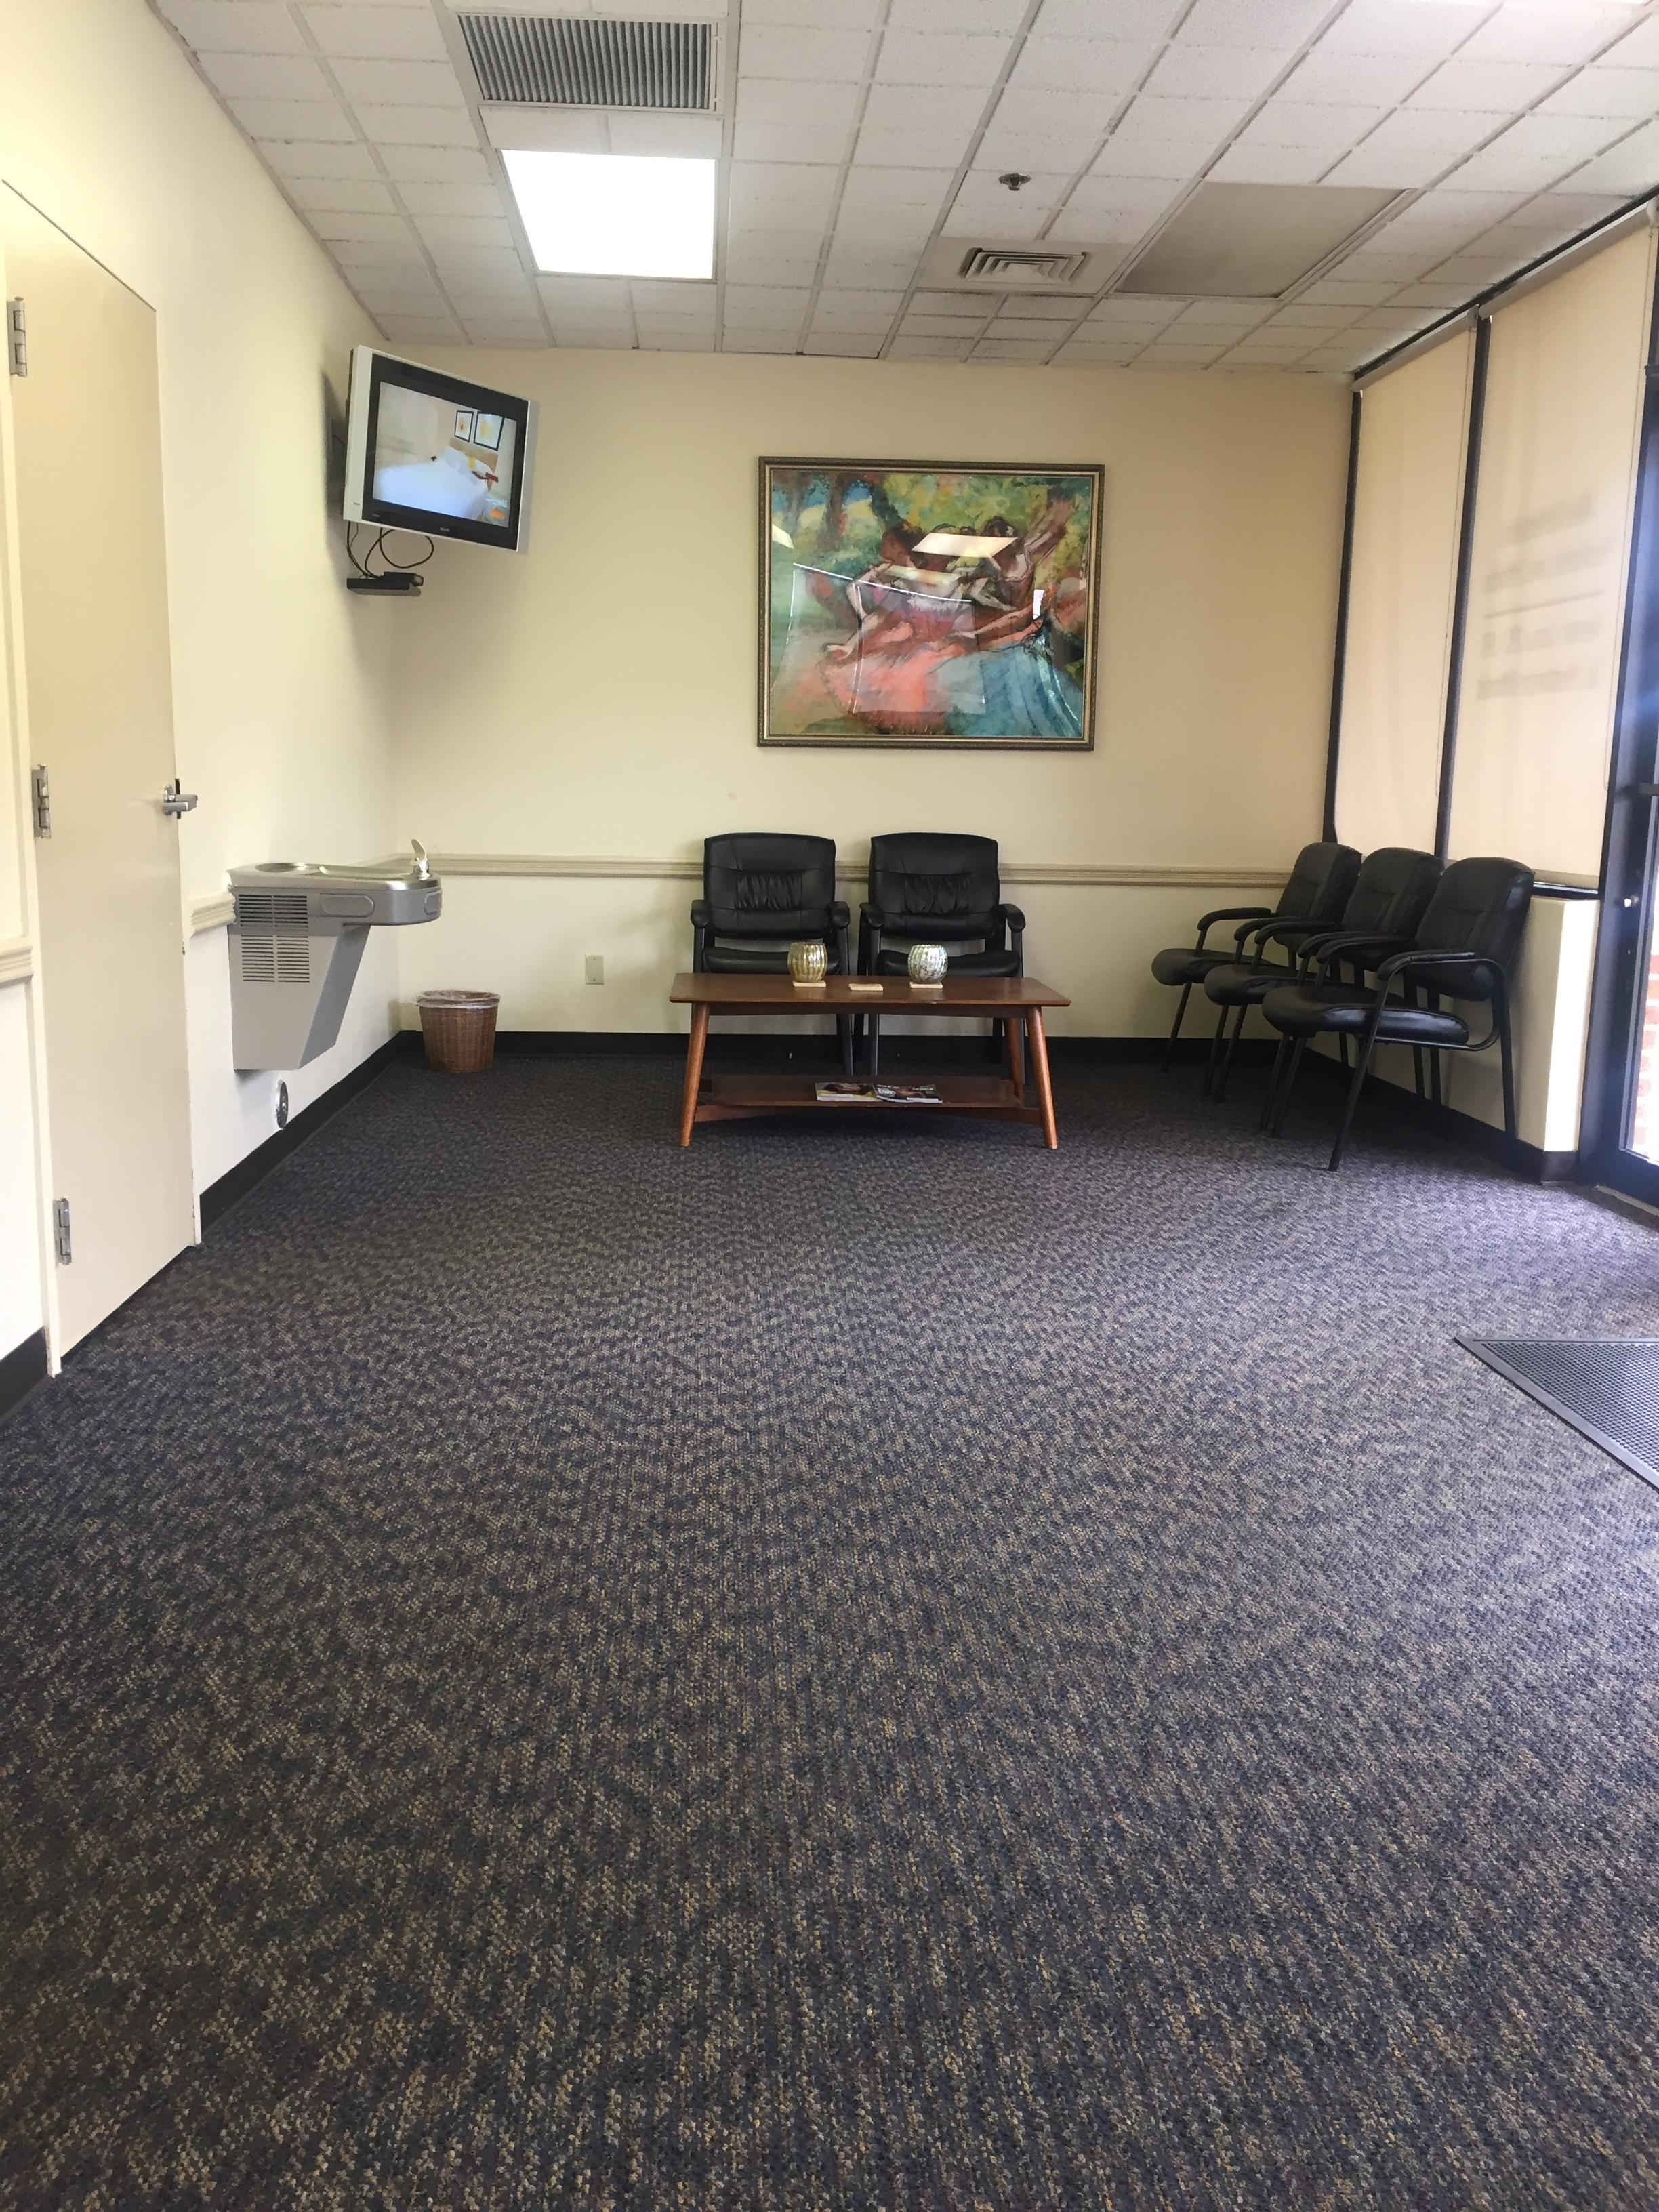 The Non-Surgical Center for Physical & Sports Medicine